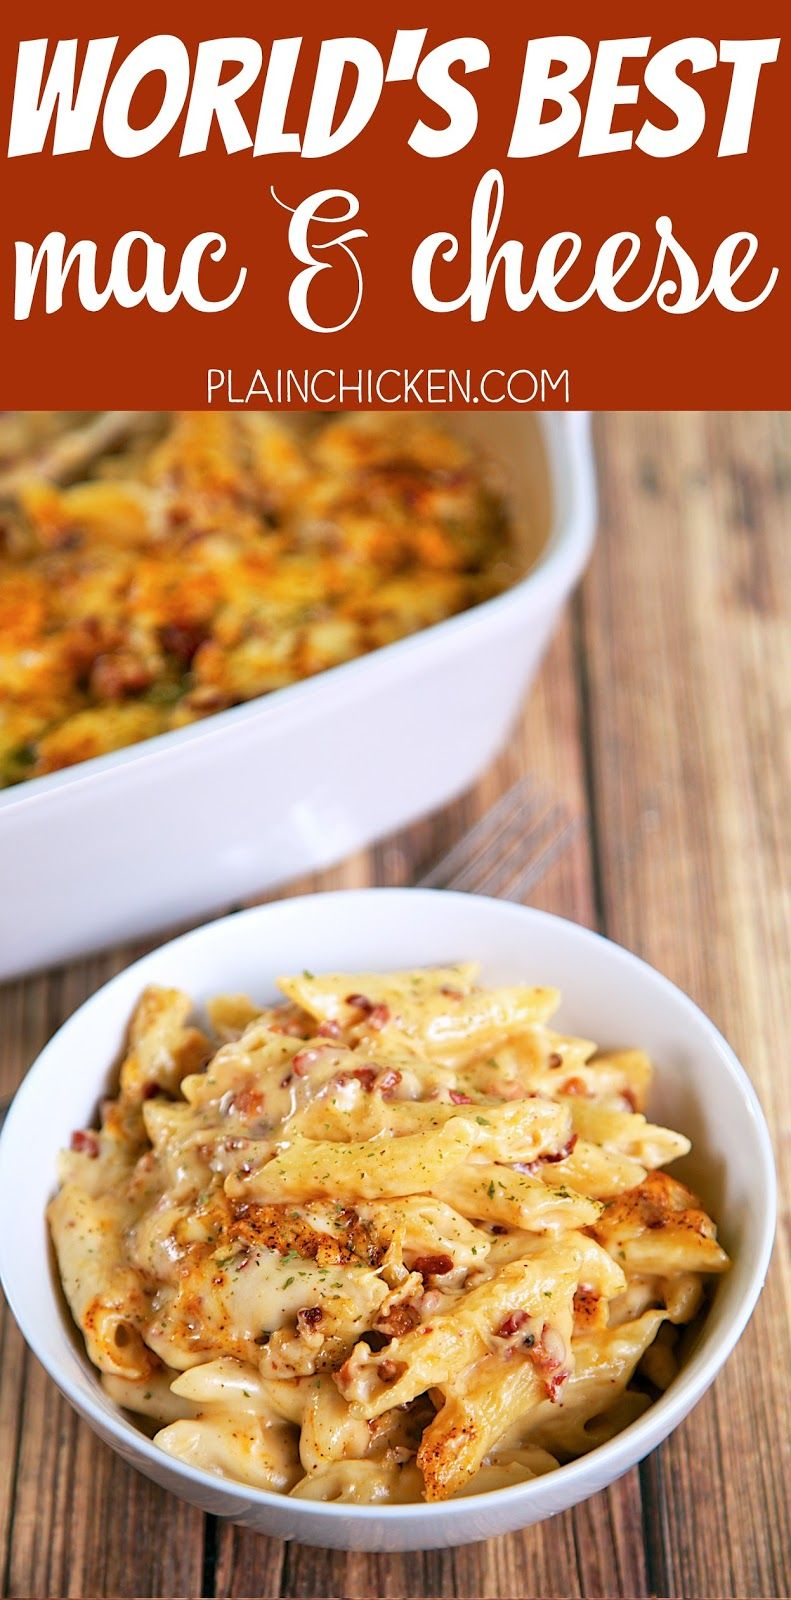 World's Best Mac and Cheese - so creamy, cheese and delicious! Just like the